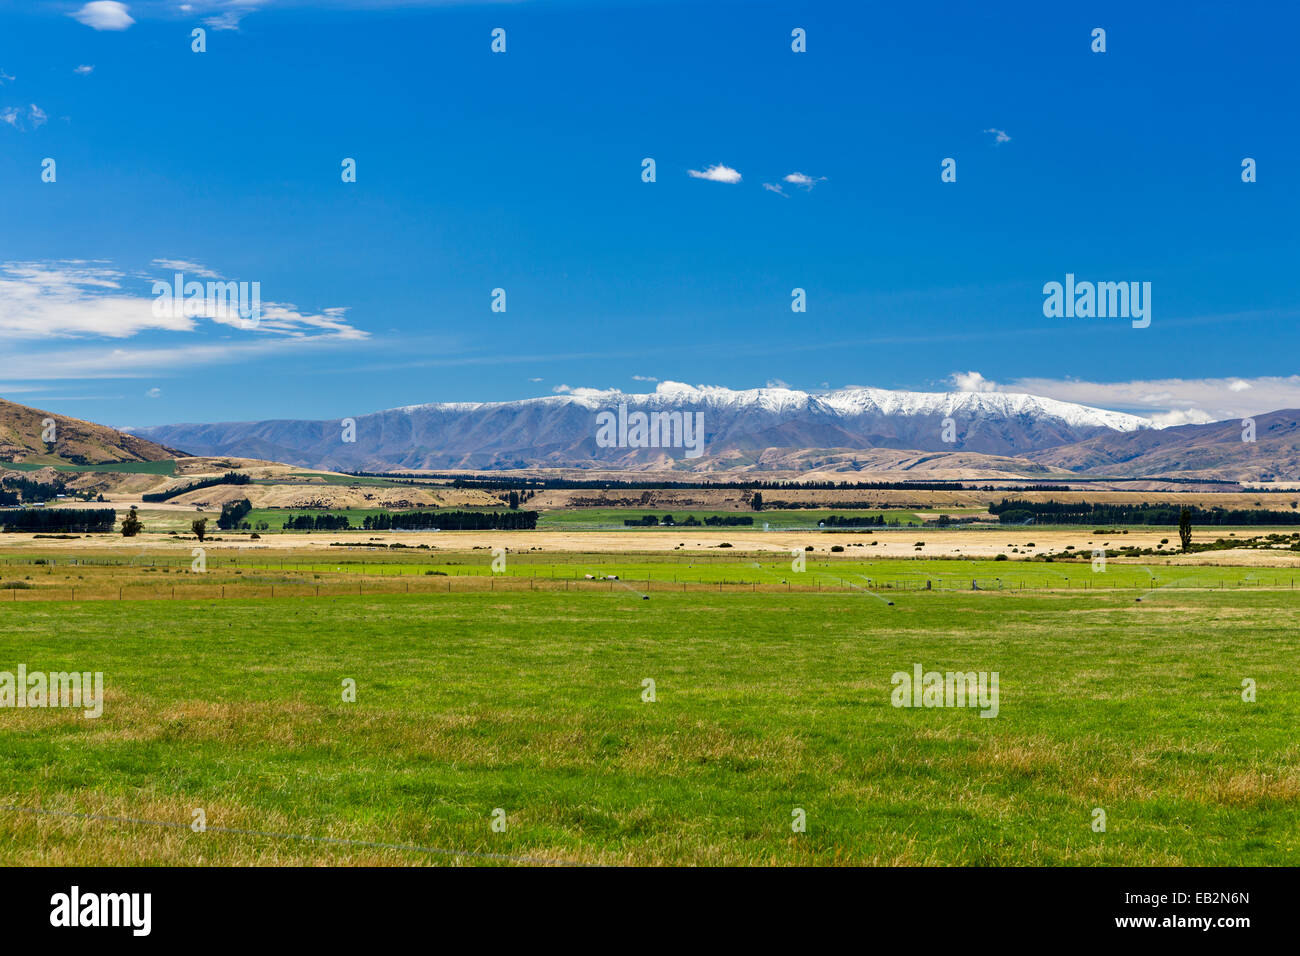 Pasture in Central Otago with the snow-capped St. Bathans Range, Queensberry, Otago Region, New Zealand - Stock Image